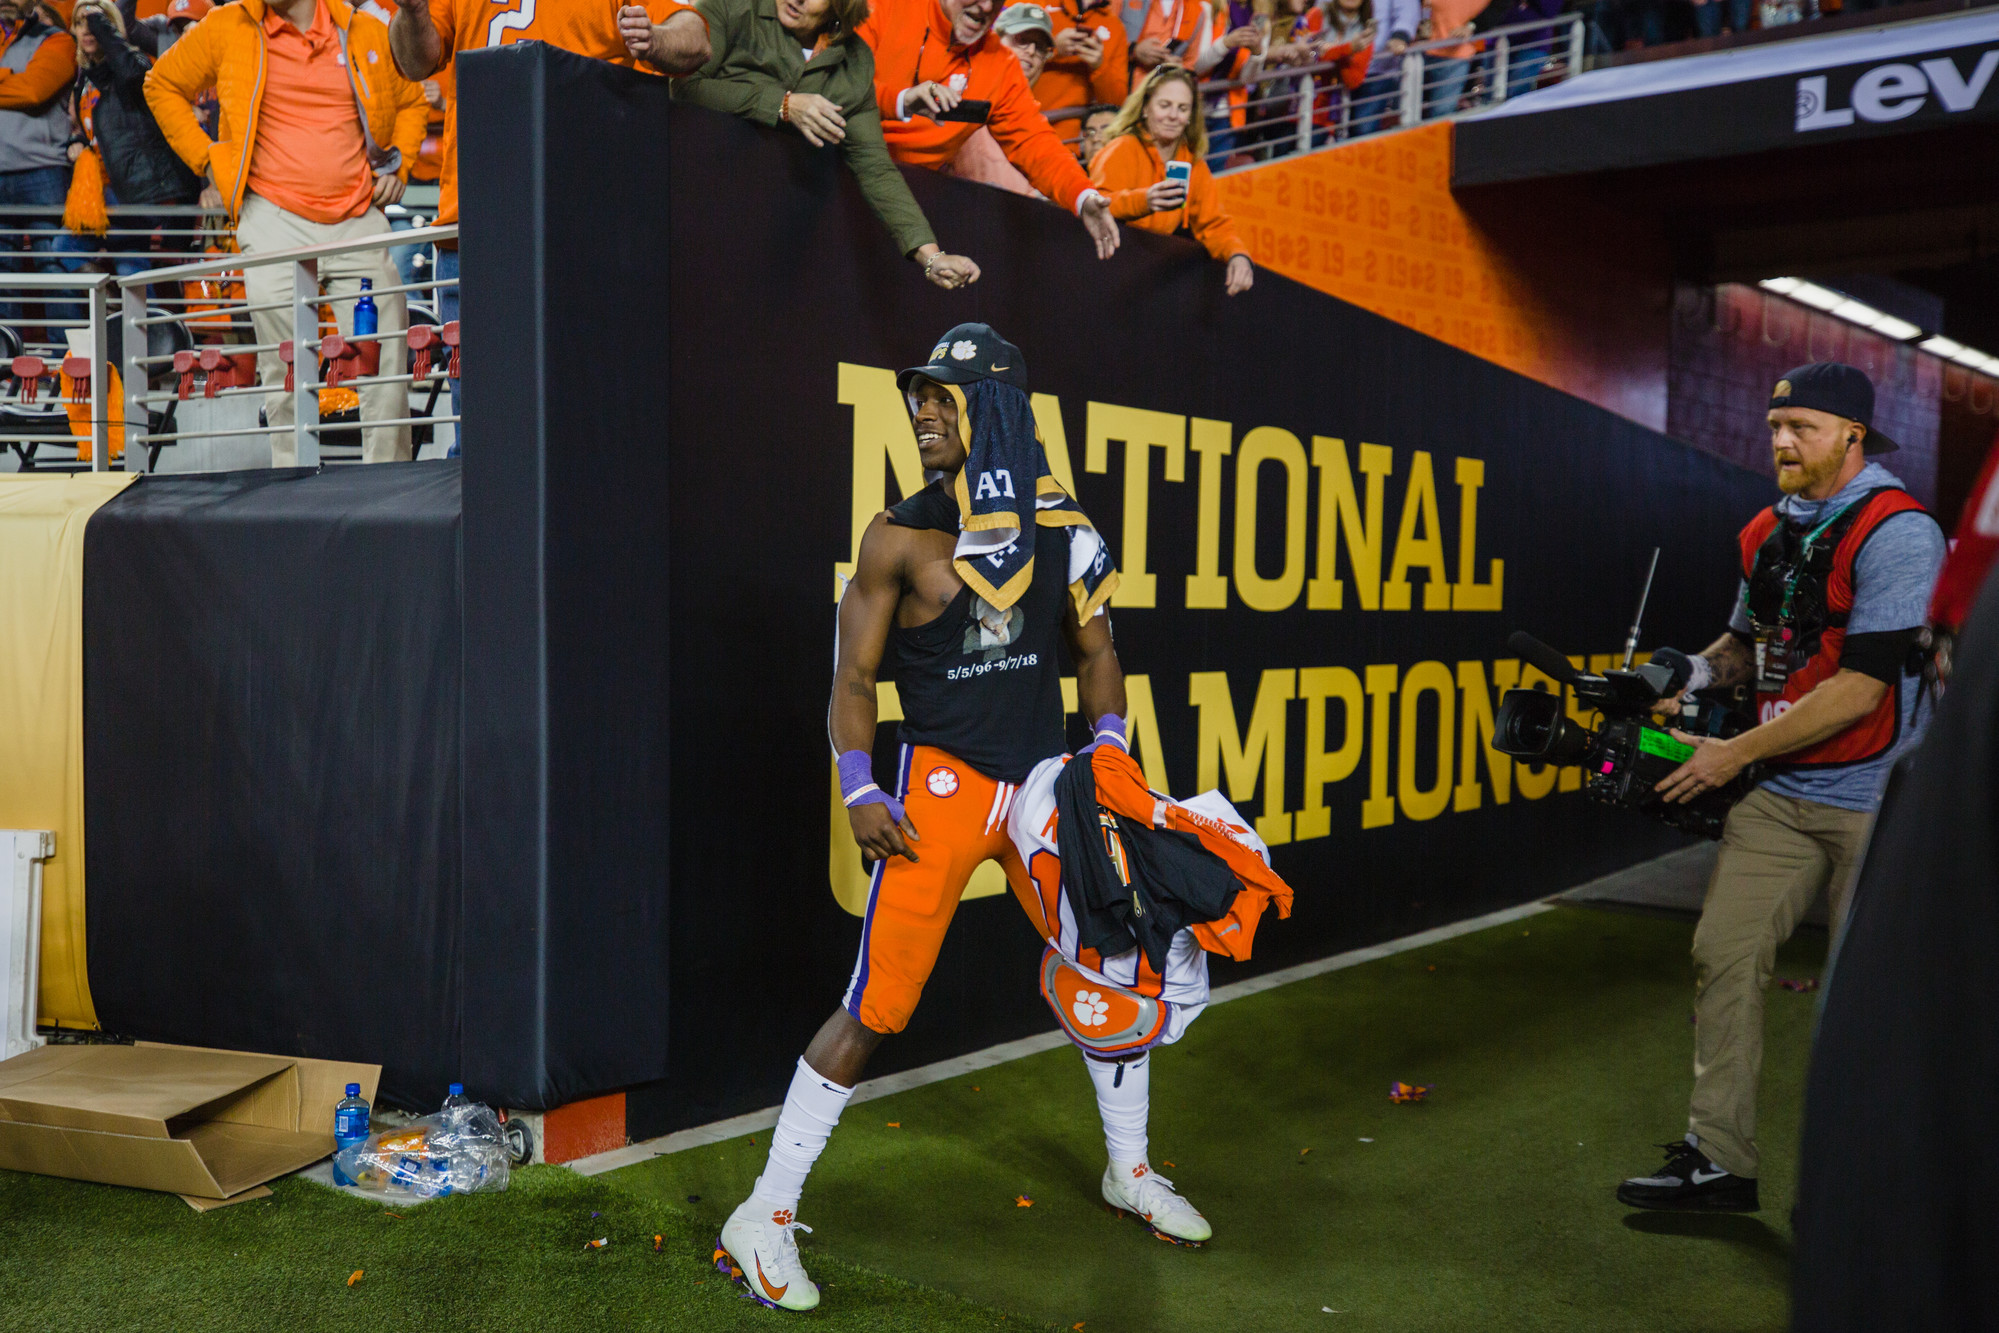 Clemson wide receiver Derion Kendrick celebrates at Levi's Stadium in Santa Clara, California, on Monday, Jan. 7 after routing Alabama 44-16 to win the 2019 CFP National Championship.